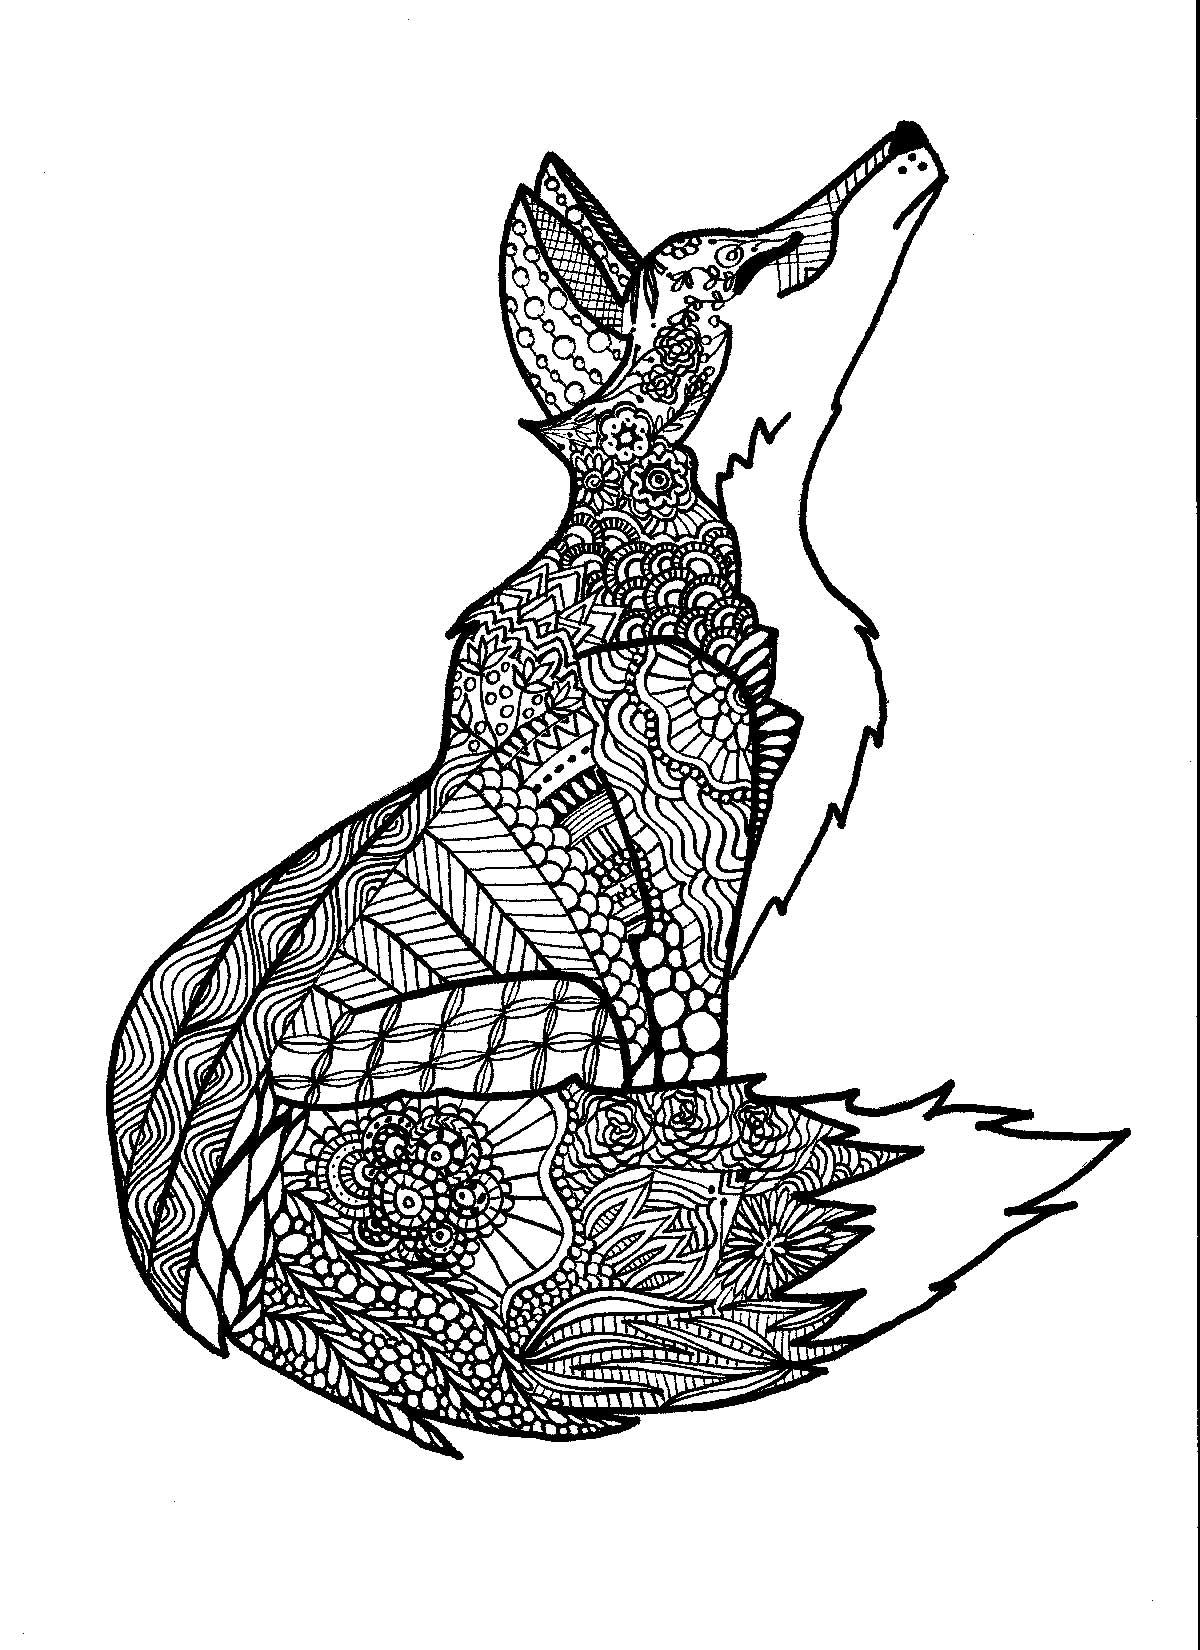 Coloring Pages Zentangle | Free download best Coloring Pages ...